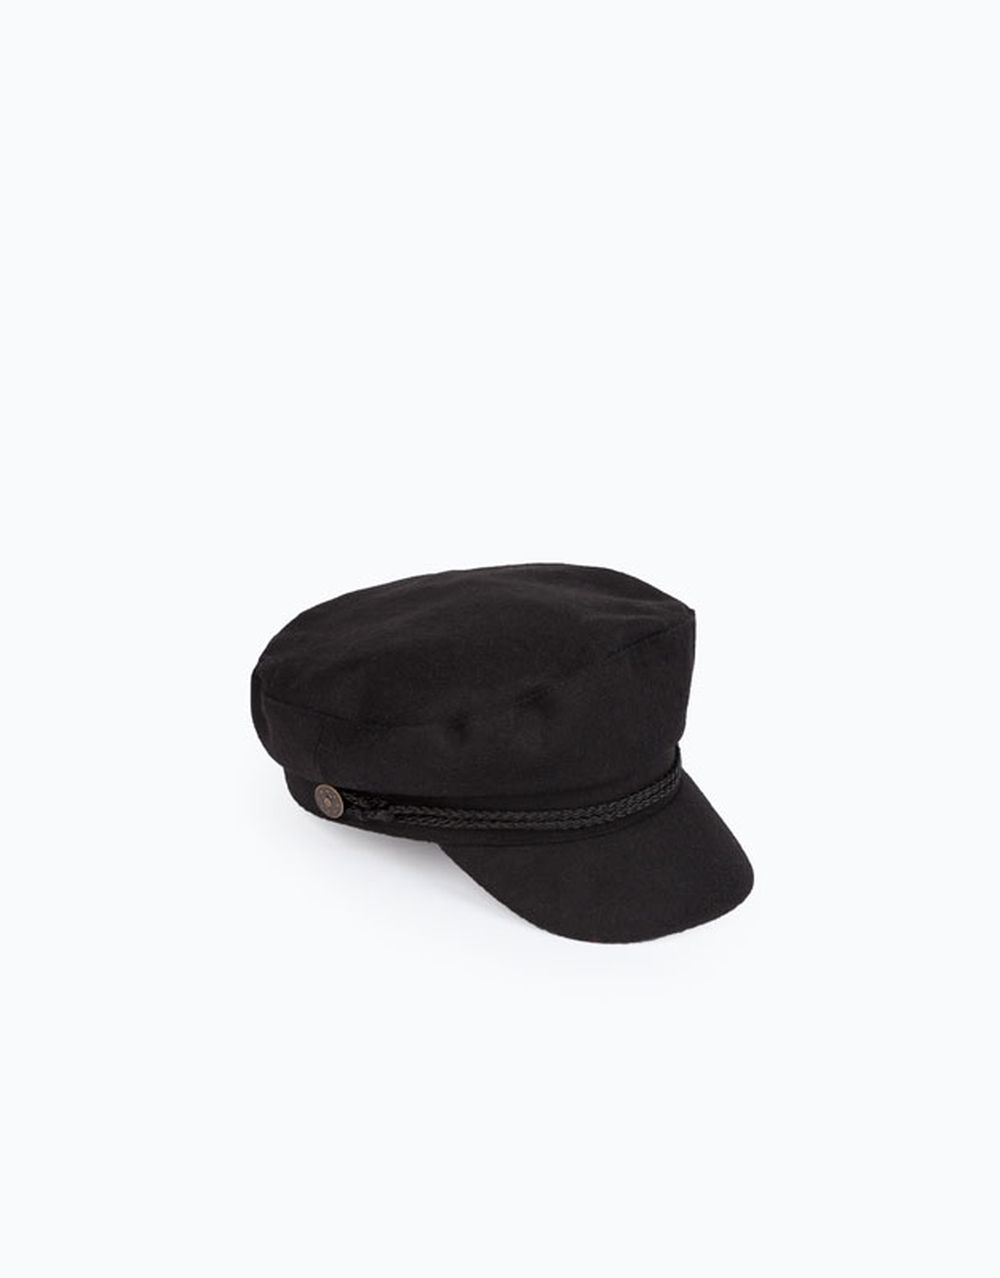 Baker boy hat de Lefties (10 euros)